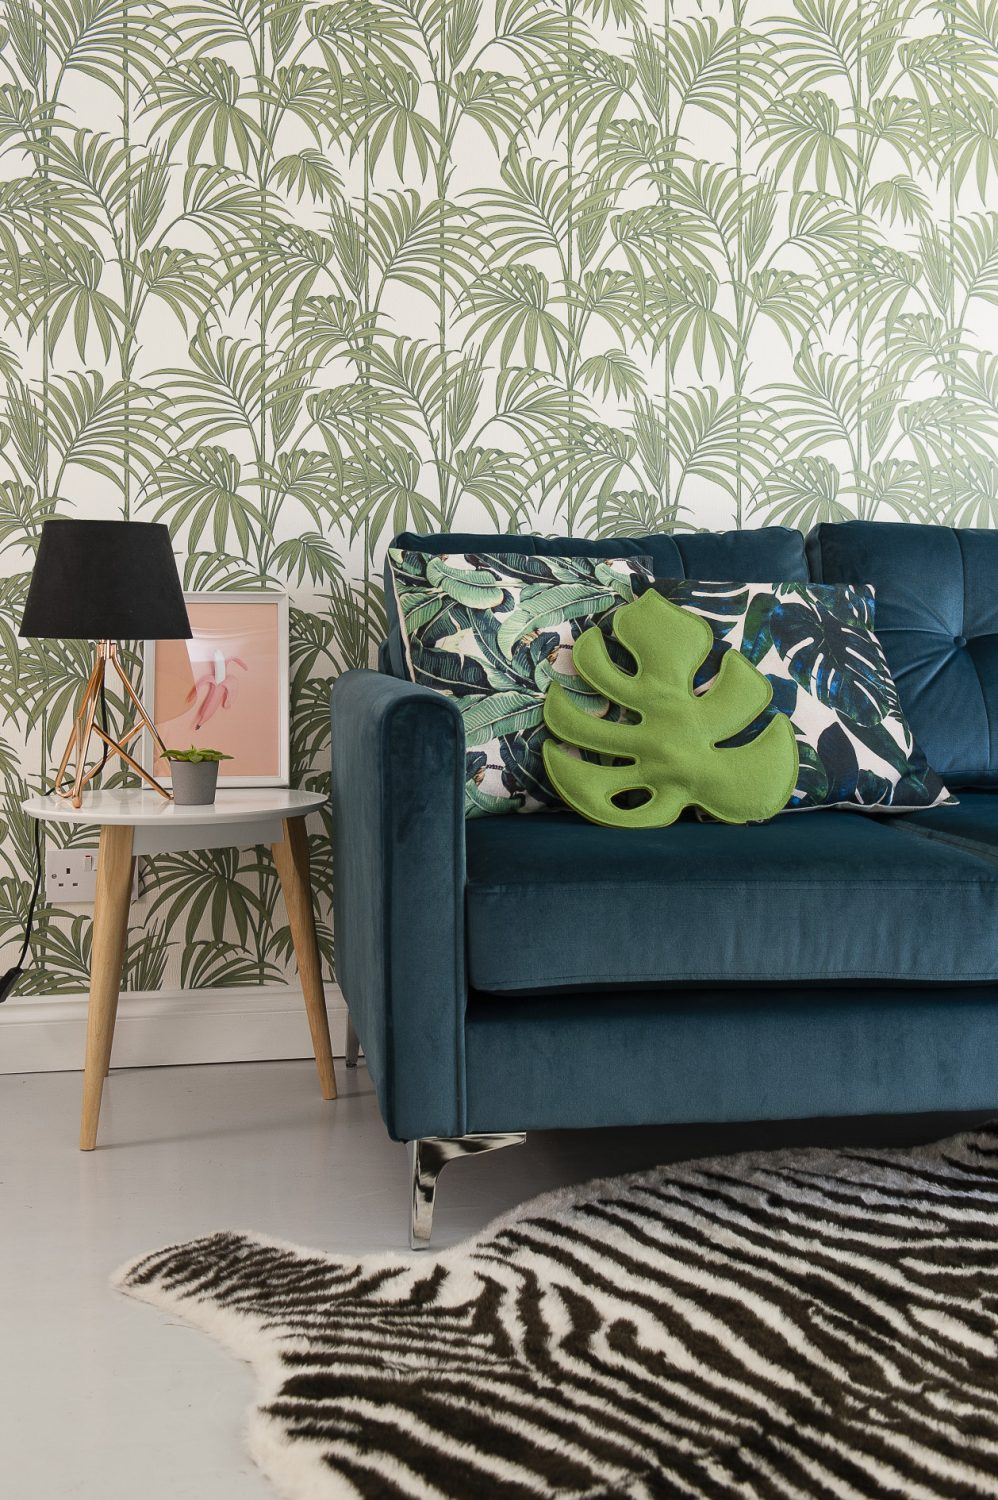 Lucinda sourced the velvet sofa in the playroom from DFS and the zebra rug is IKEA. The wallpaper is 'Honolulu' Palm Green from Graham & Brown